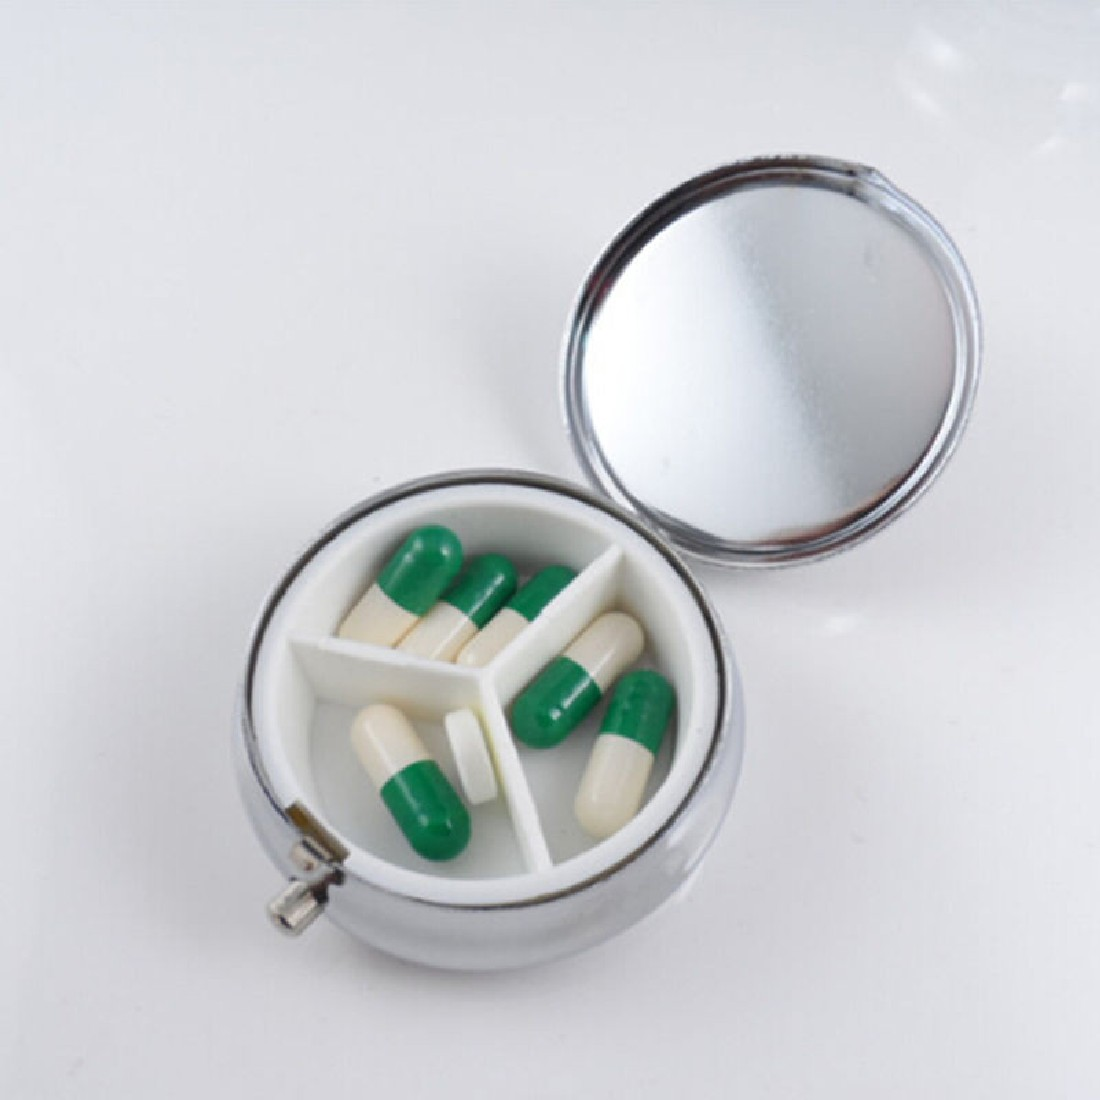 Metal Round Silver Tablet Pill Boxes Holder 3 Cell Advantageous Container Medicine Case Portable Divide Storage Small Case